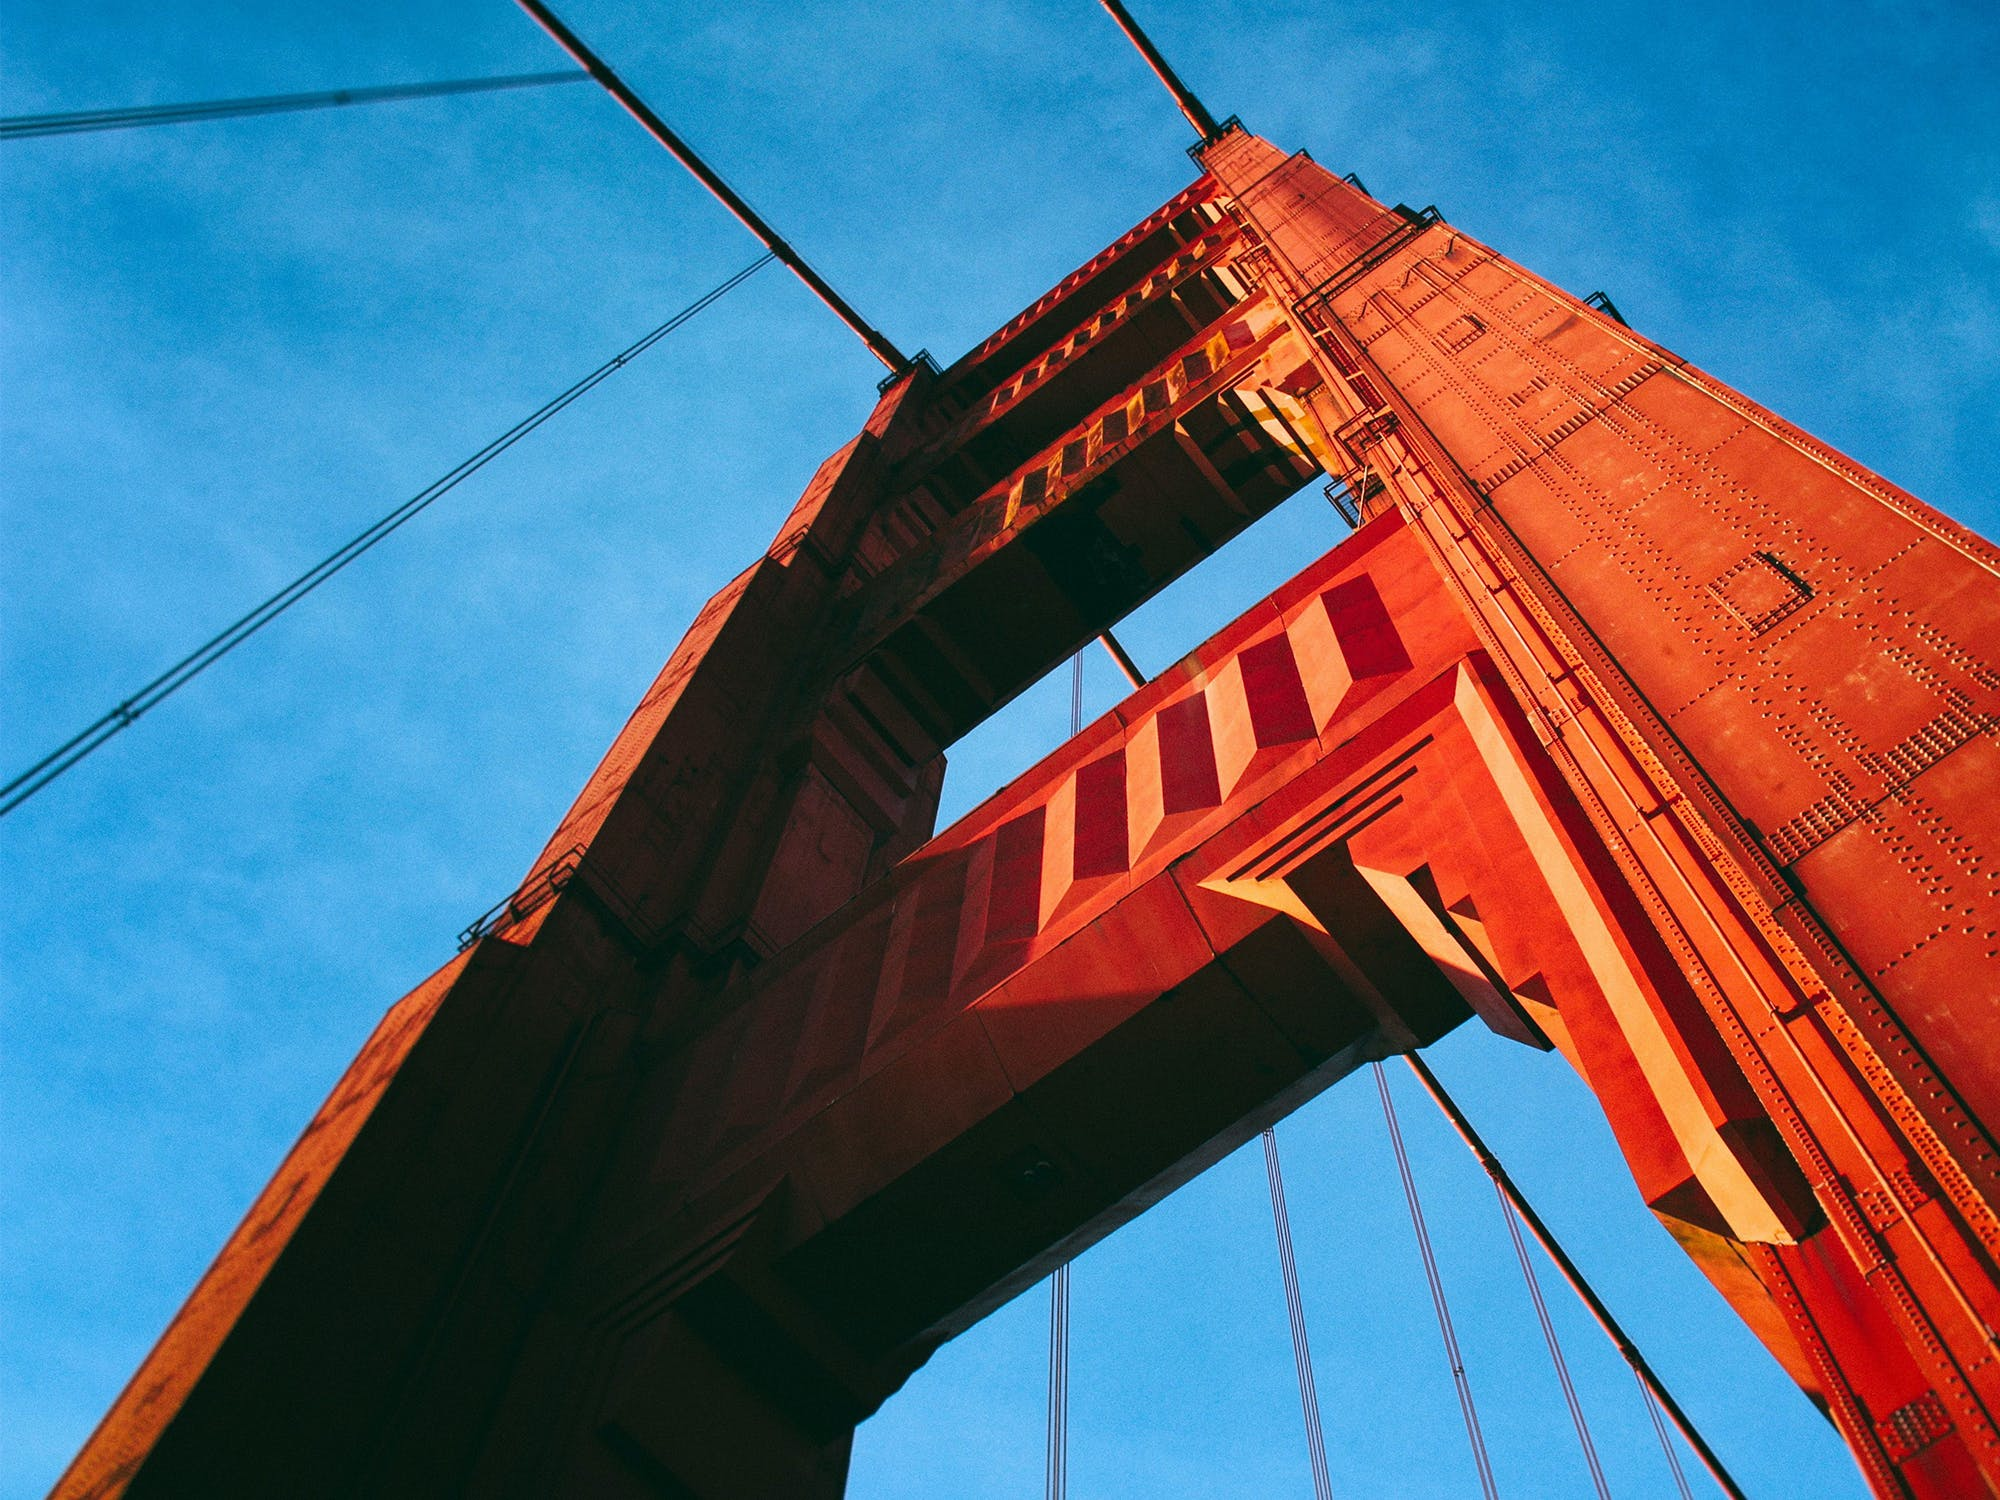 GOLDEN_GATE_BRIDGE - San Francisco